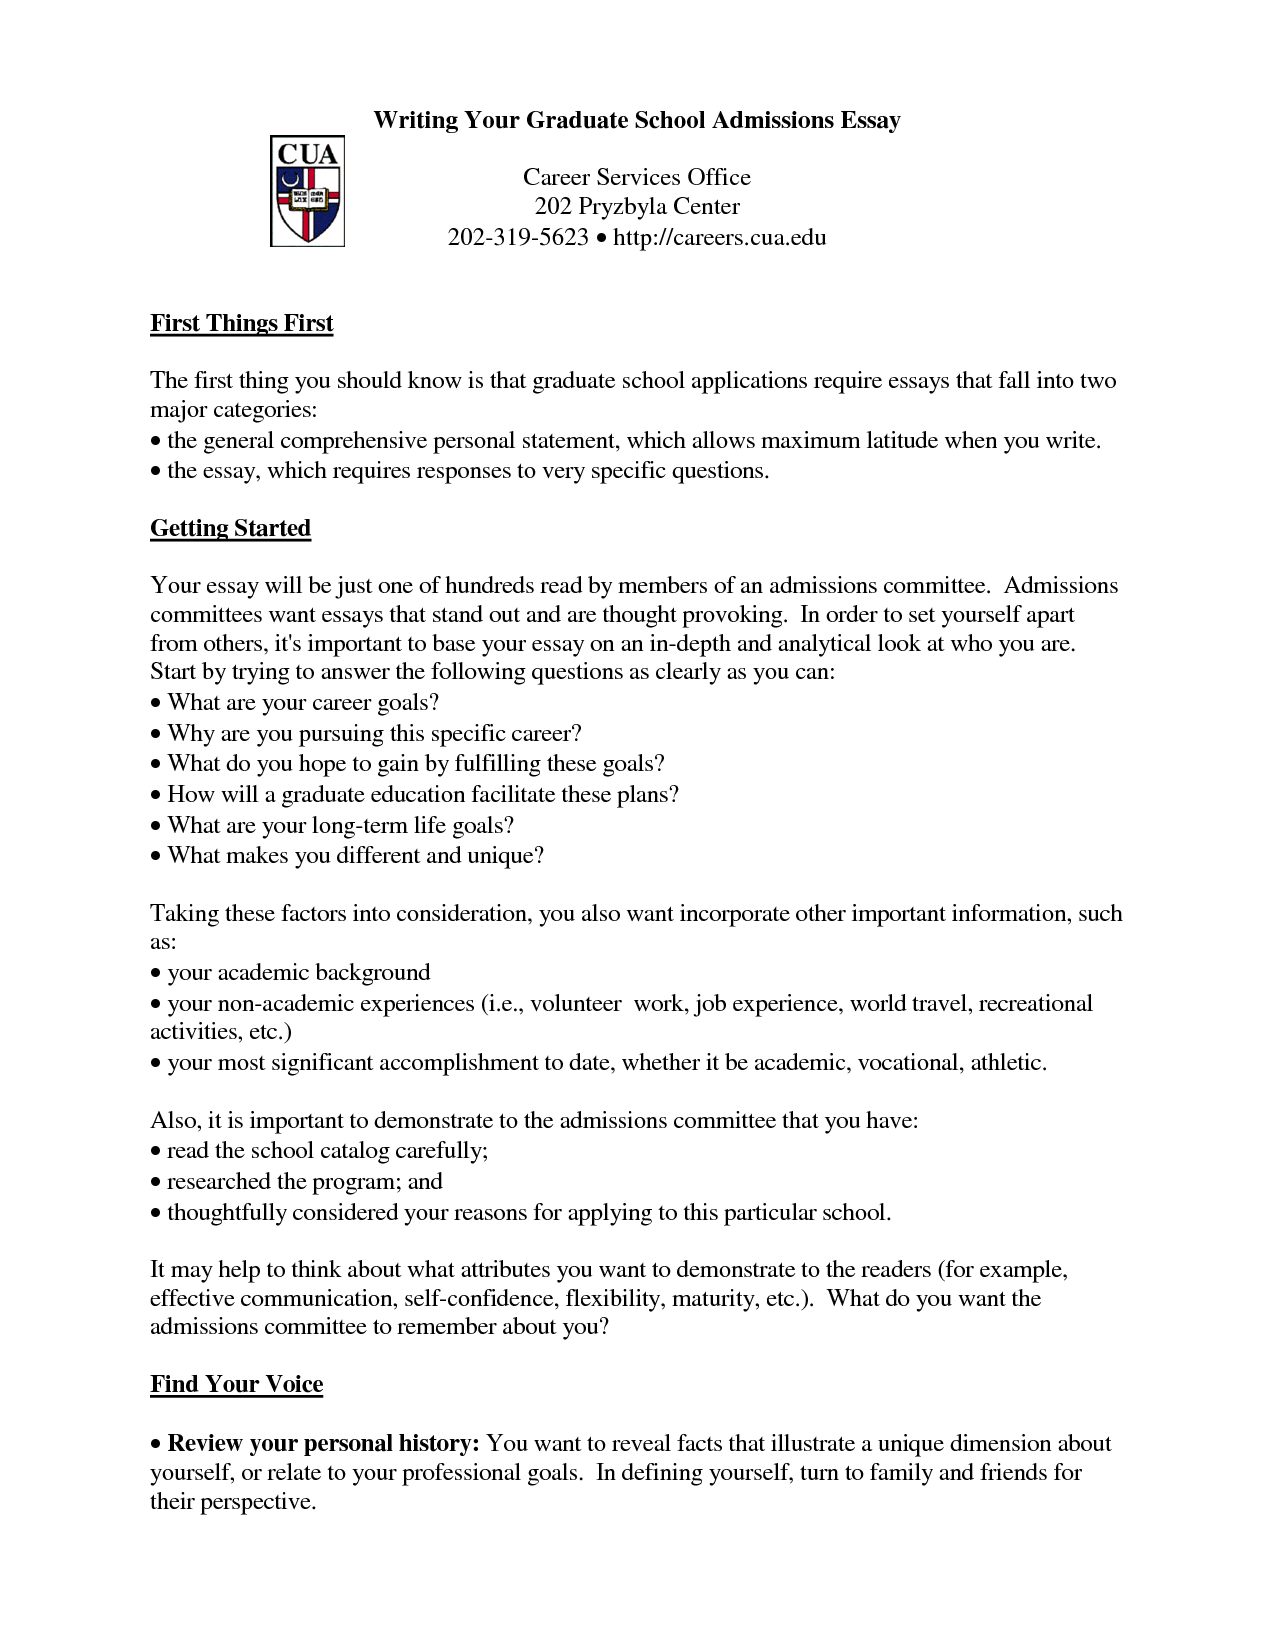 personal statement sample essays for cover letter prompt essay personal statement sample essays for graduate admissions - Graduate School Essays Examples